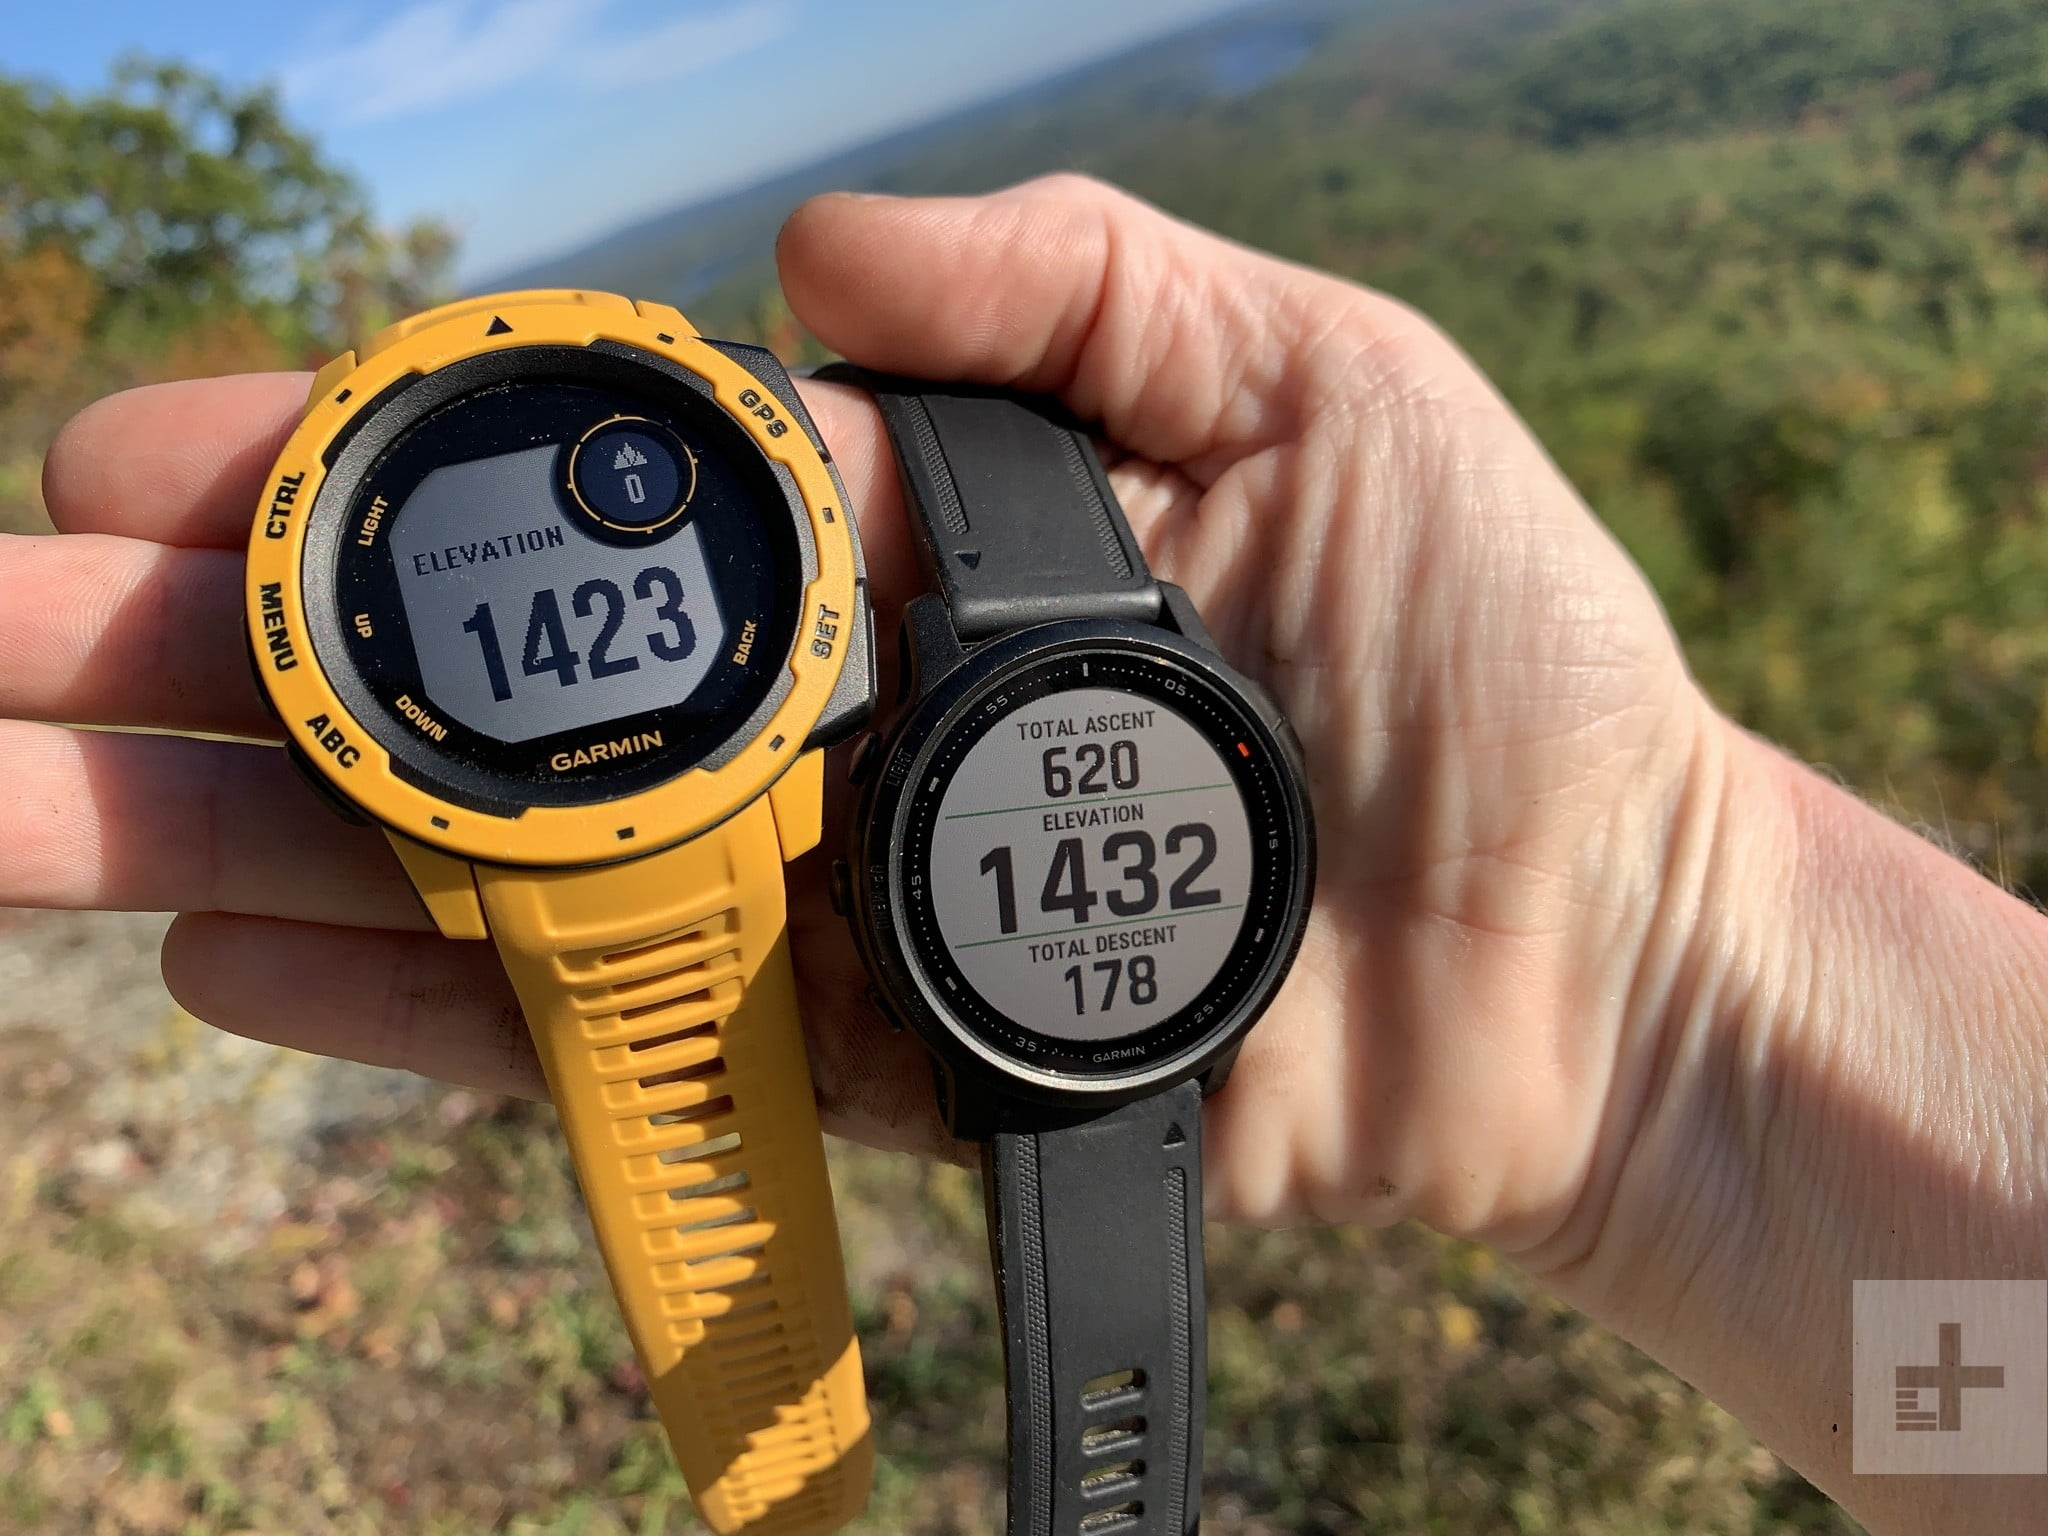 Amazon's deal on the Garmin Instinct saves you $56 on a stellar outdoor watch